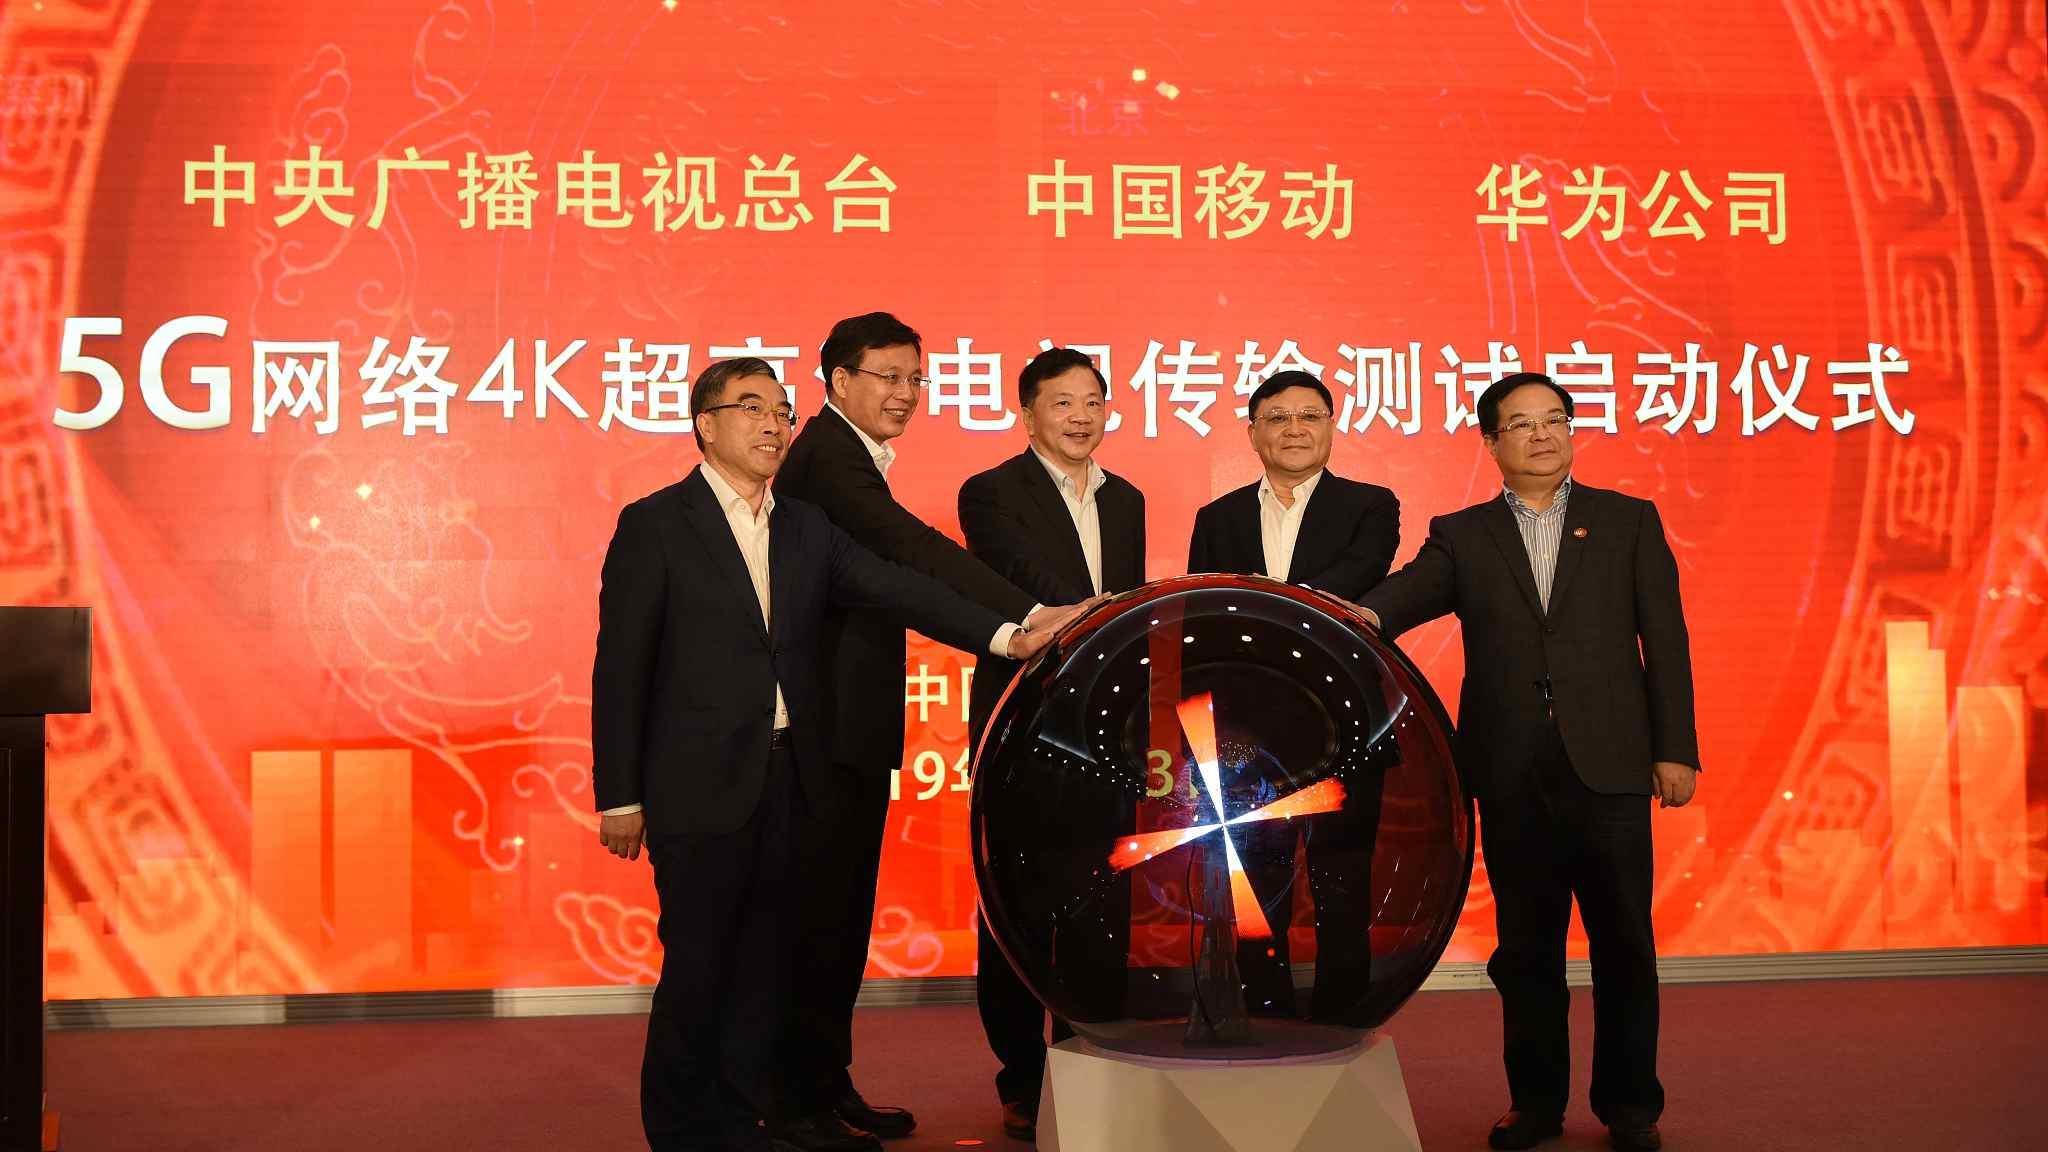 China completes first 5G-based 4K video transmission test - CGTN